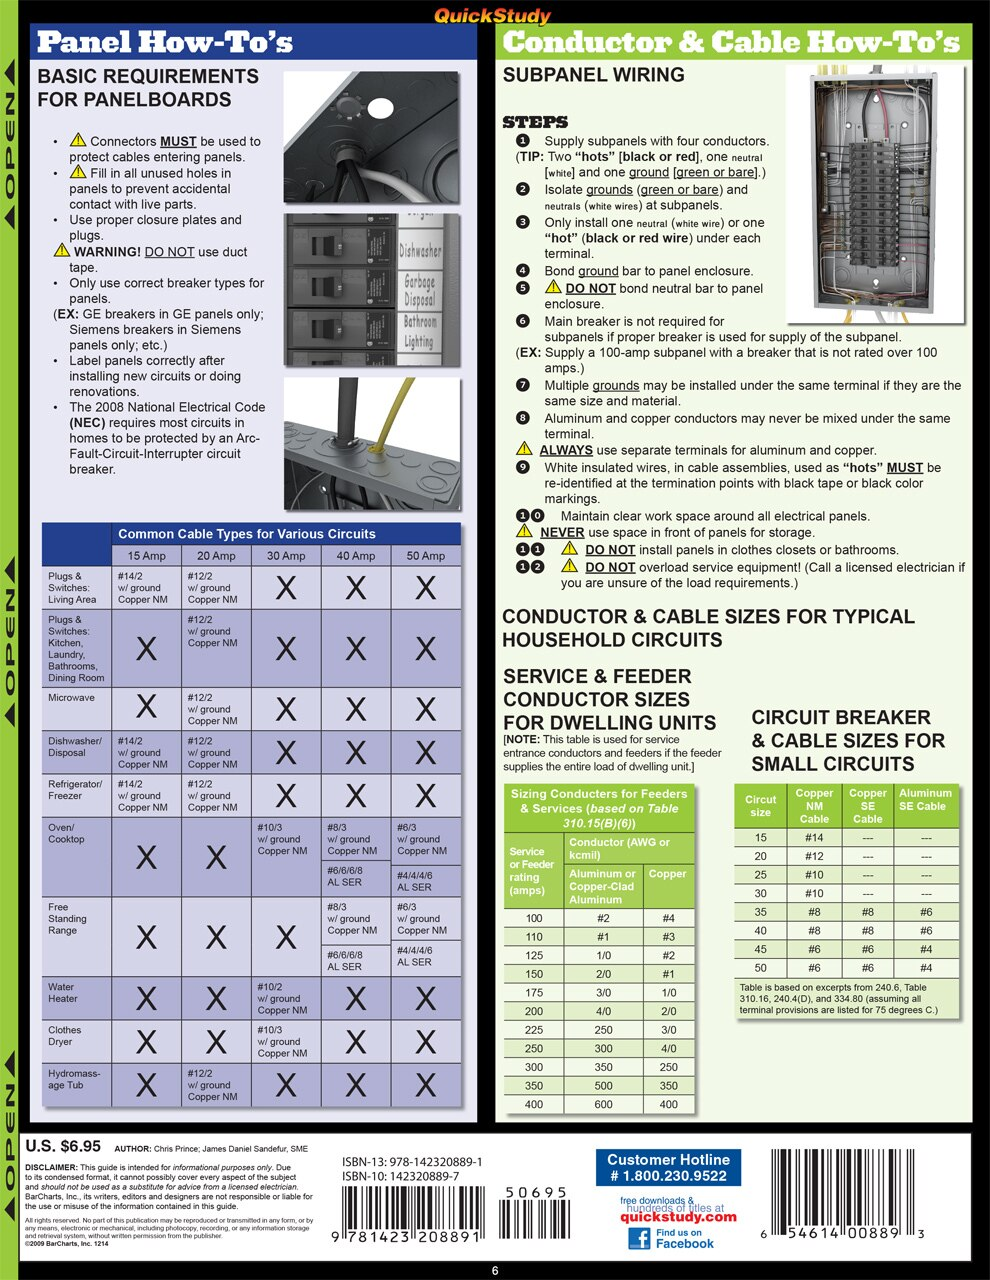 Quick Study QuickStudy Electrical Laminated Reference Guide BarCharts Publishing Engineering Guide Back Image